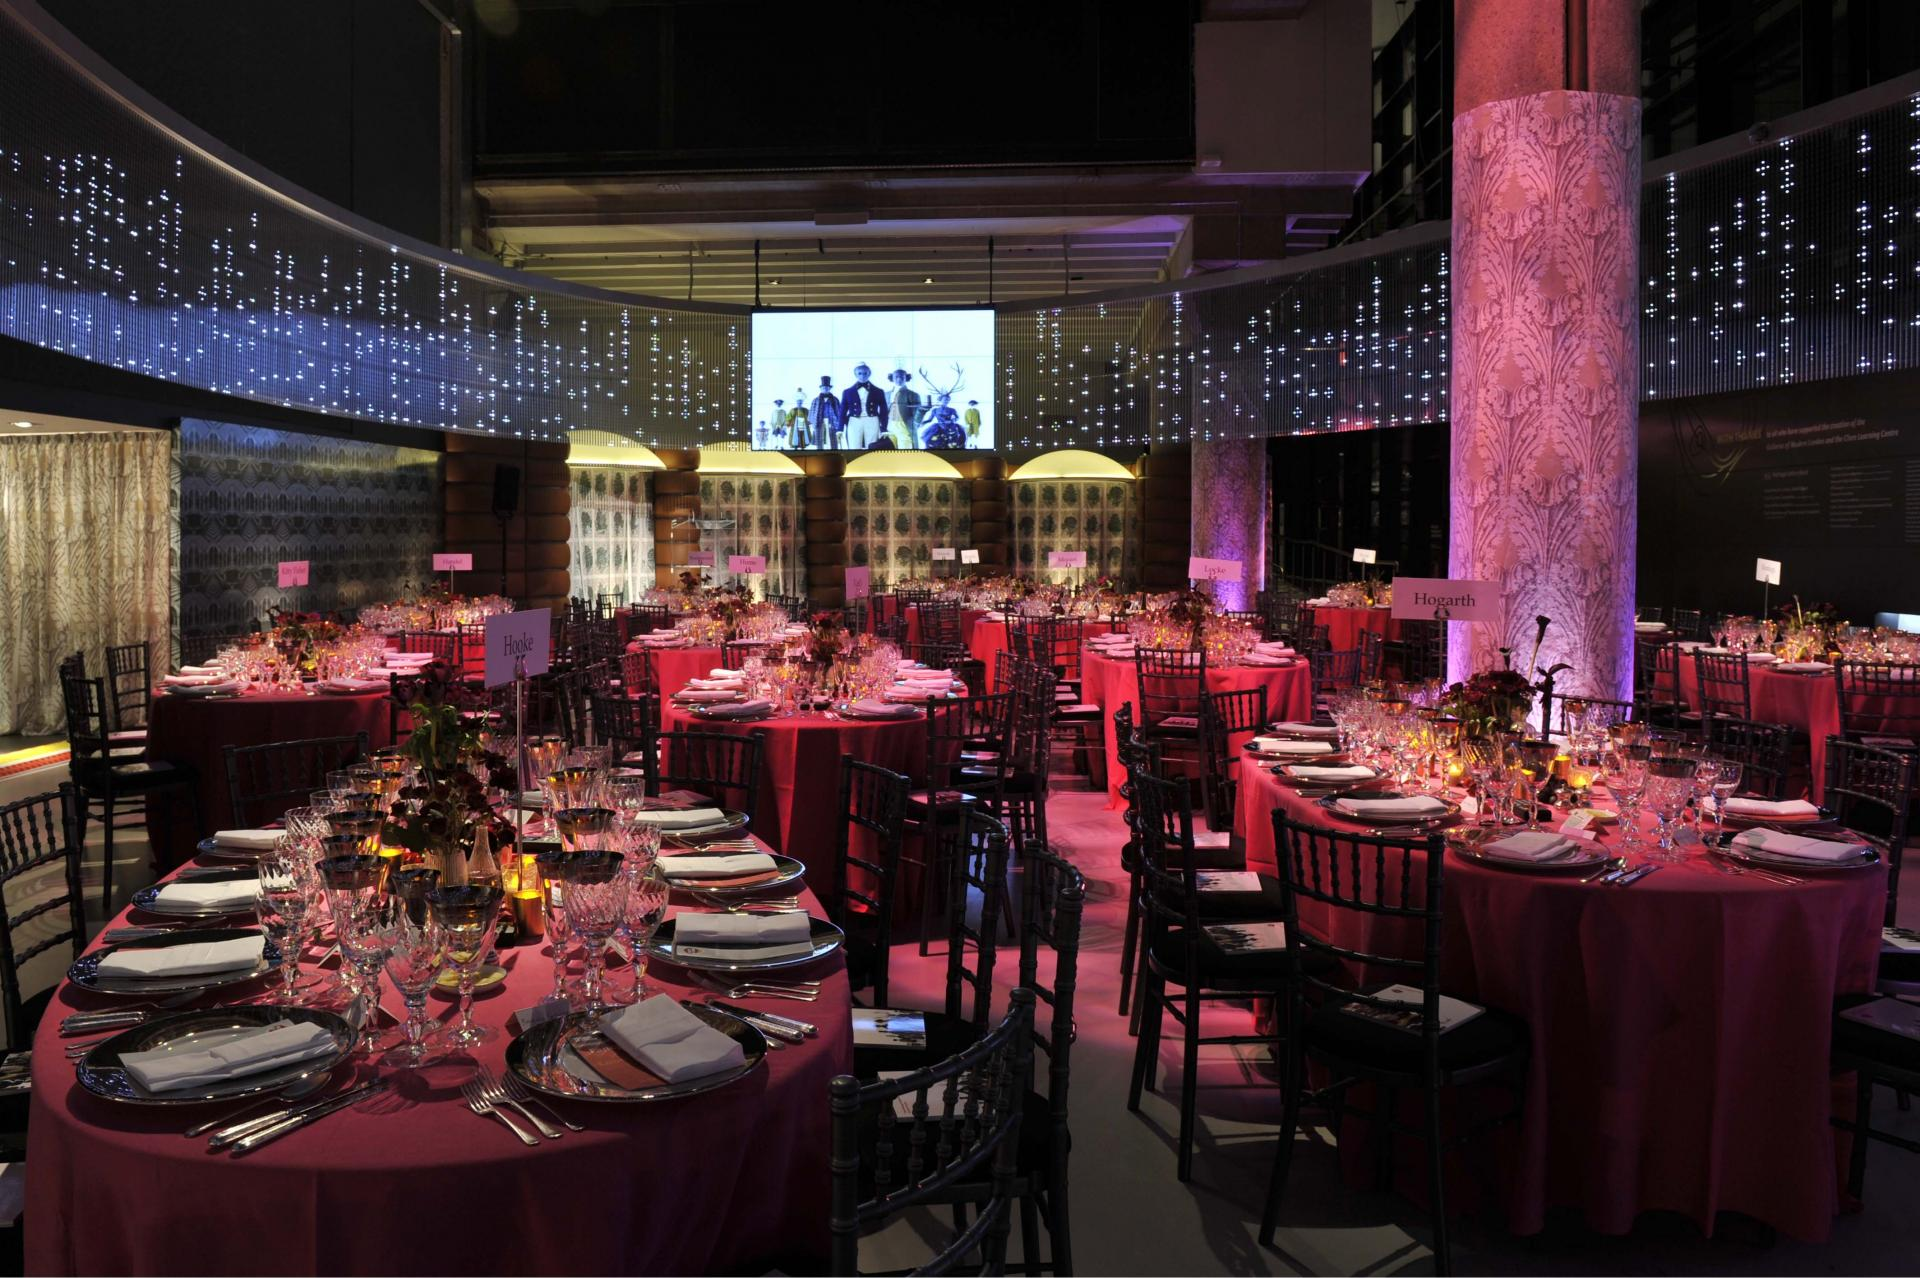 Museum Of London Venue Hire London Unique Venues Of London